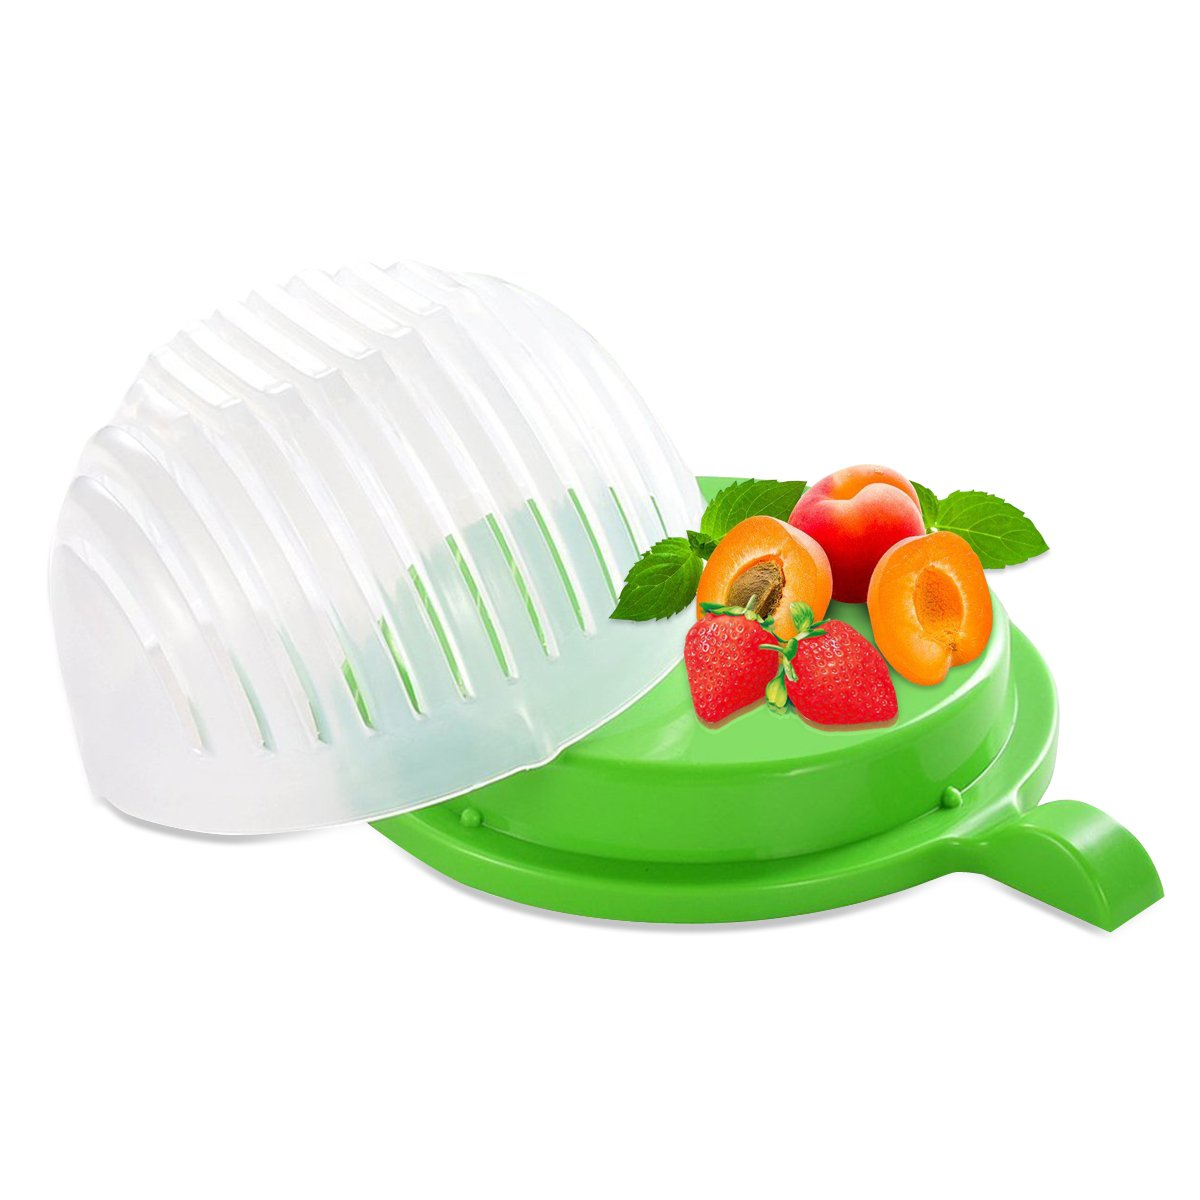 Rophie Durable Salad Cutter Salad Chopper Easy 60 Seconds Salad Maker Salad Cutter Bowl Vegetable Fruit Cutter Bowl FDA Certified Fast and Effective Salad Slicer Ltd E-5002-US